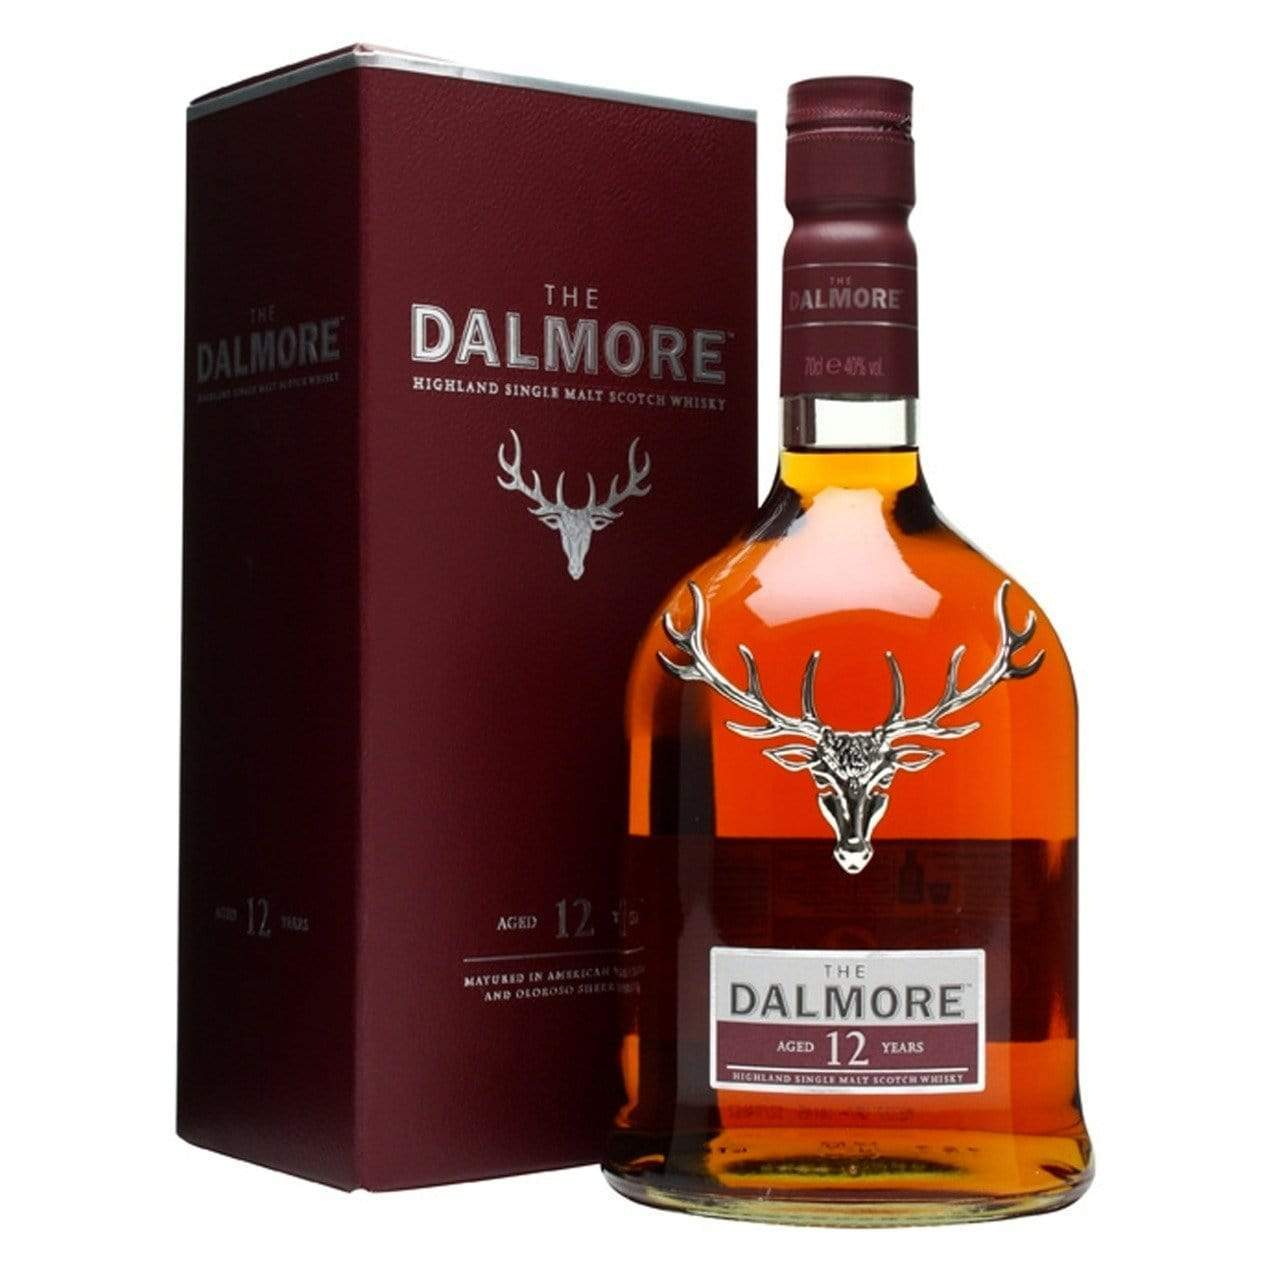 alcohol The Dalmore 12 Years, 750ml